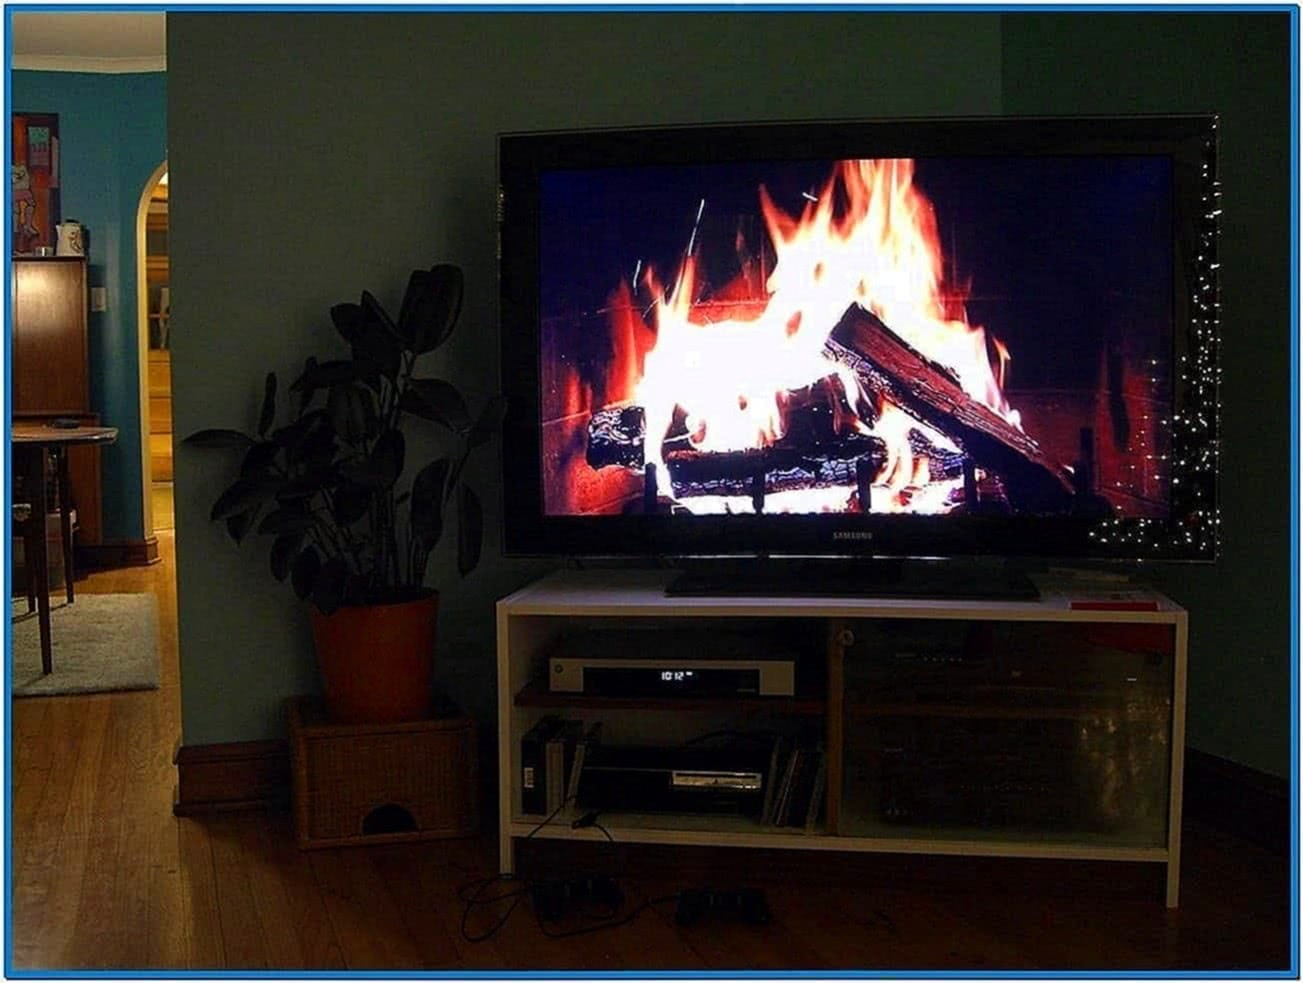 fireplace screensaver for lg tv download free